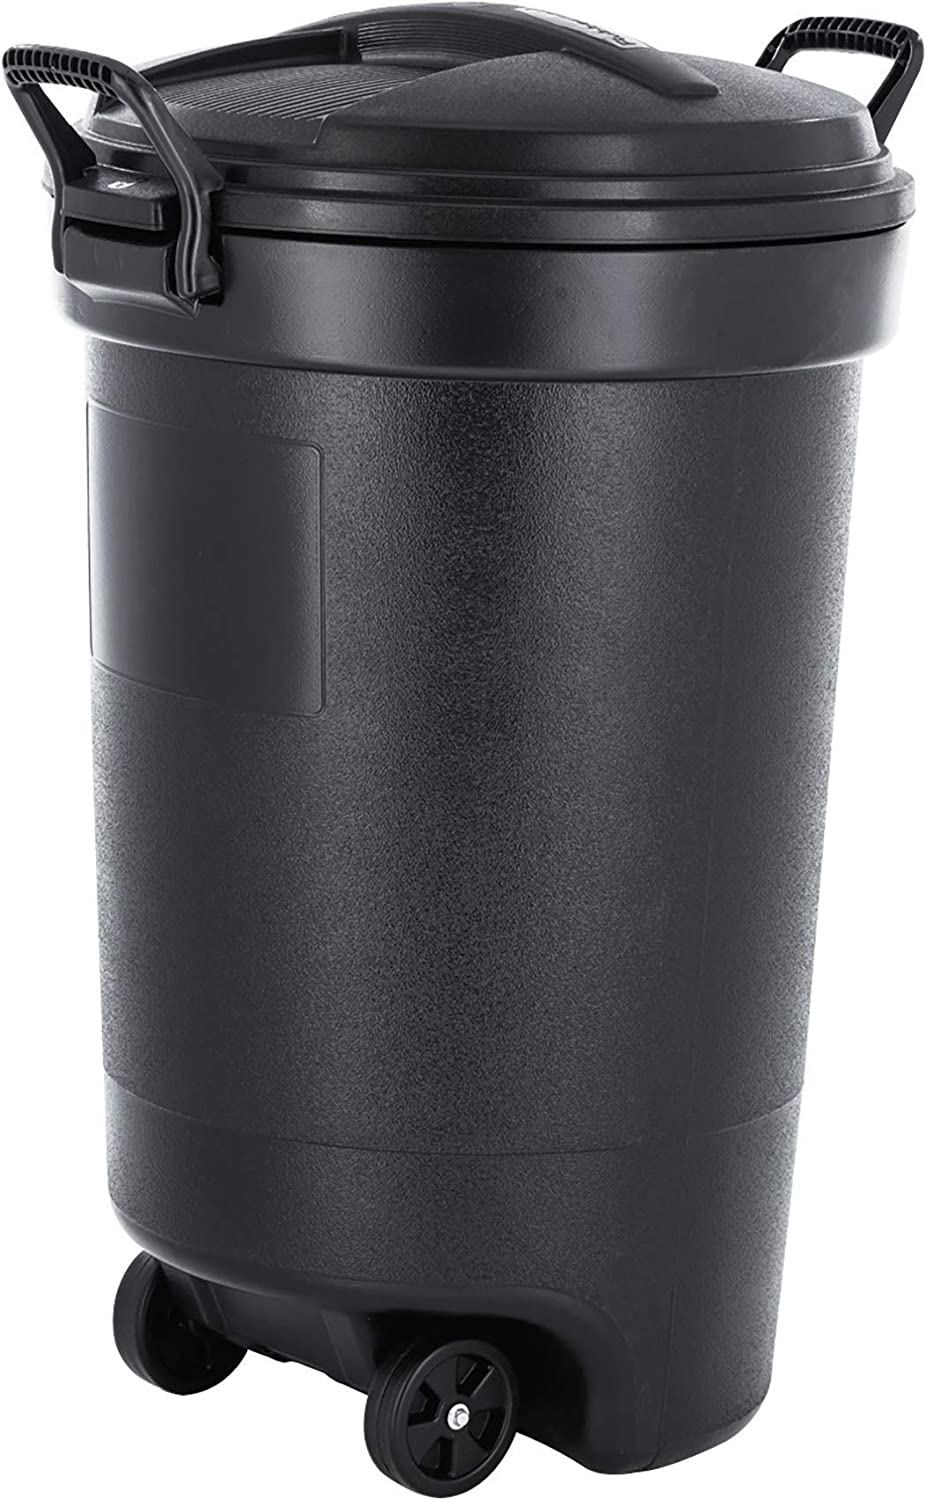 Rubbermaid RM133901 32 Gallon Outdoor Waste Garbage Bin with Attached 2 Heavy-Duty Locking Handles, Snap Shut Lid, 32gal Trash, Black